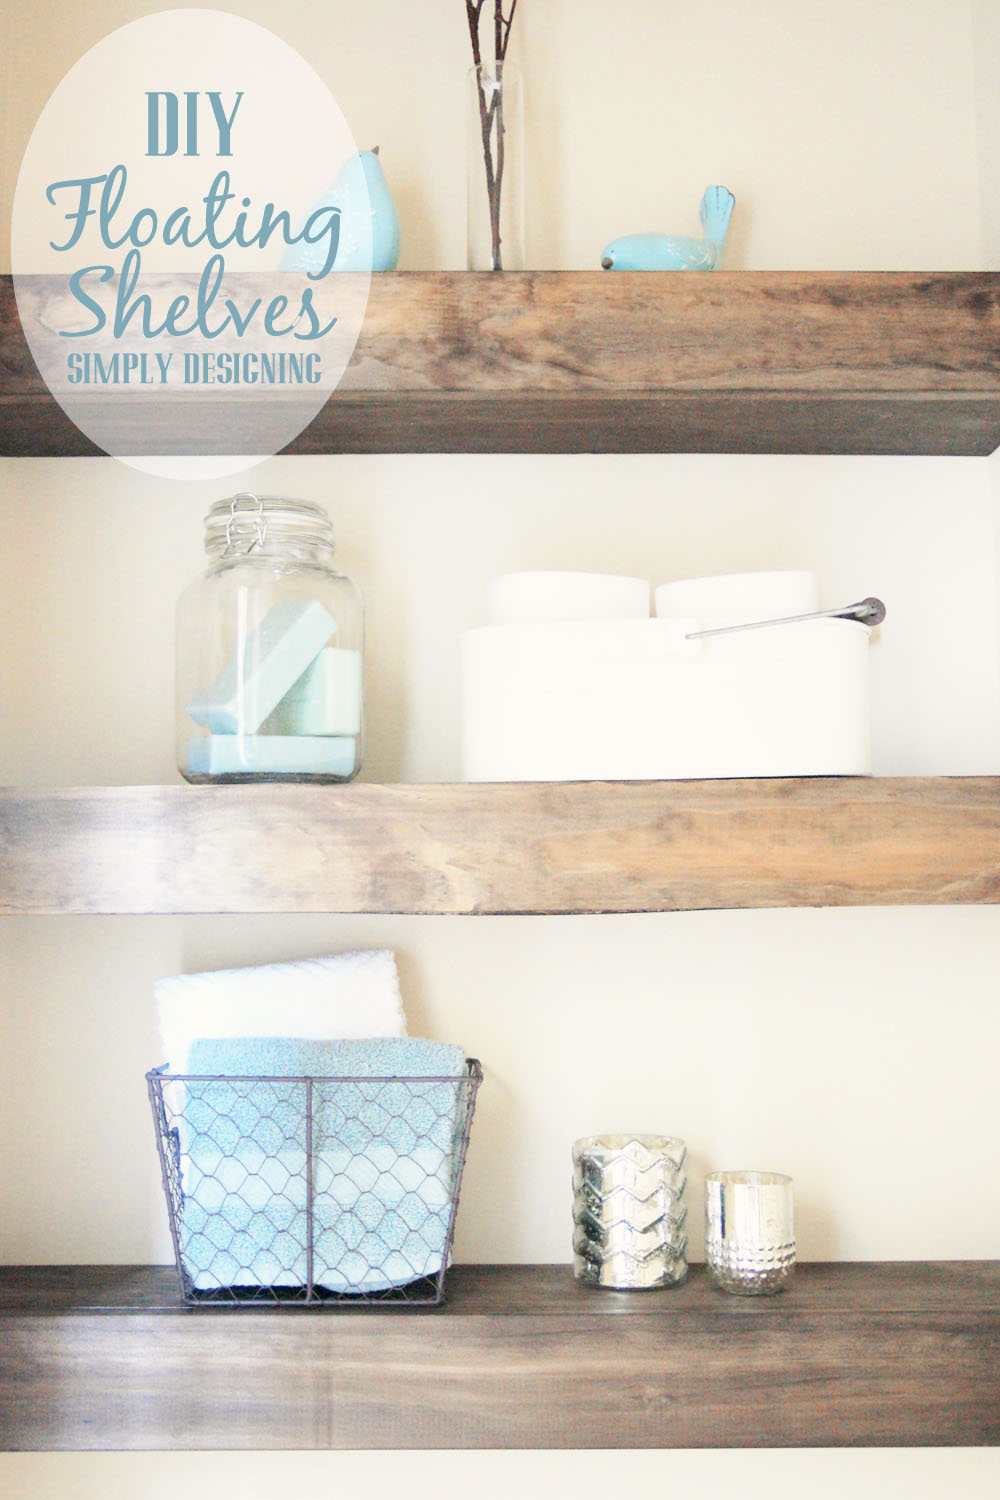 diy floating shelves how measure cut and install bathroom are really easy make they the perfect small shelf for books kitchen cupboards wood mantel supports shower brackets garage